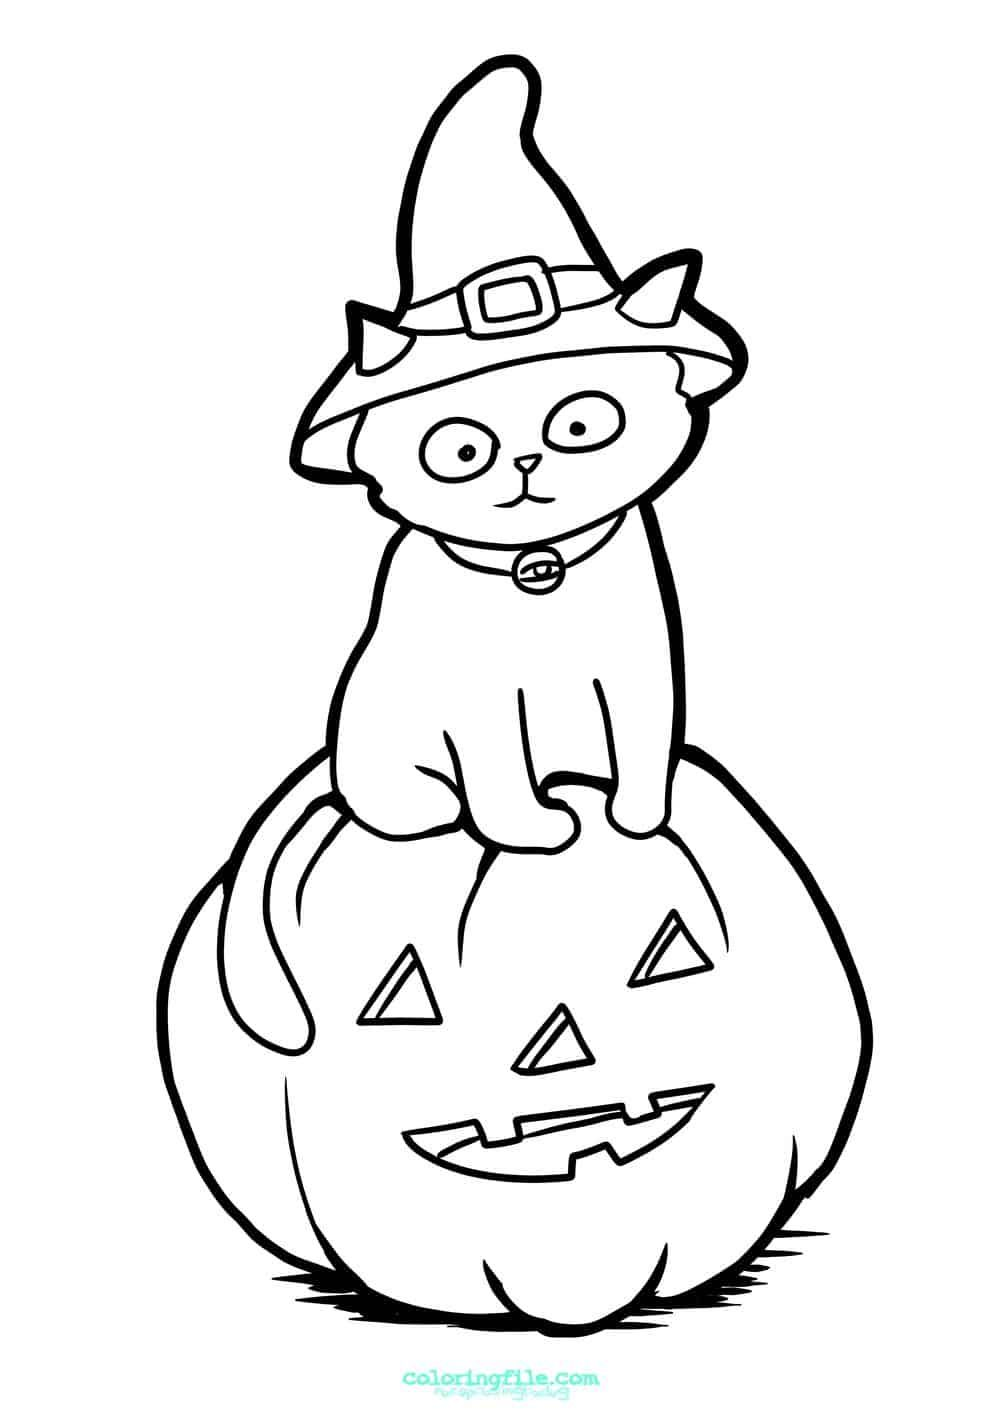 Halloween Cat With Sitting On Pumpkin Coloring Pages From 100